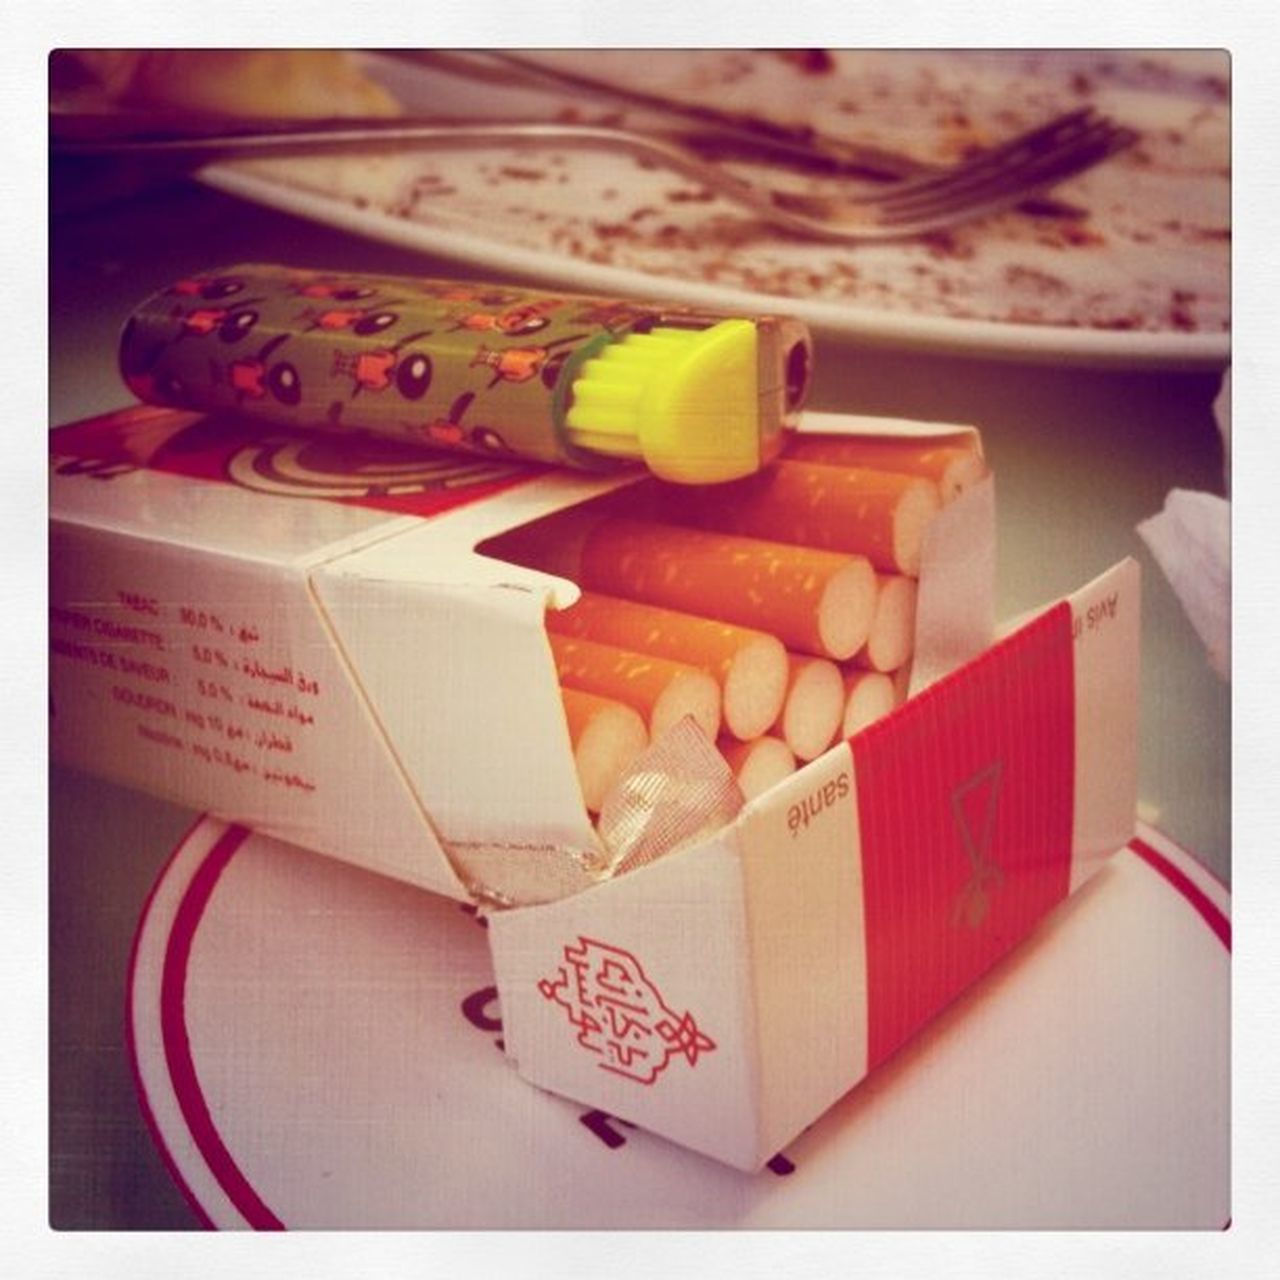 Tunisian cigarettes